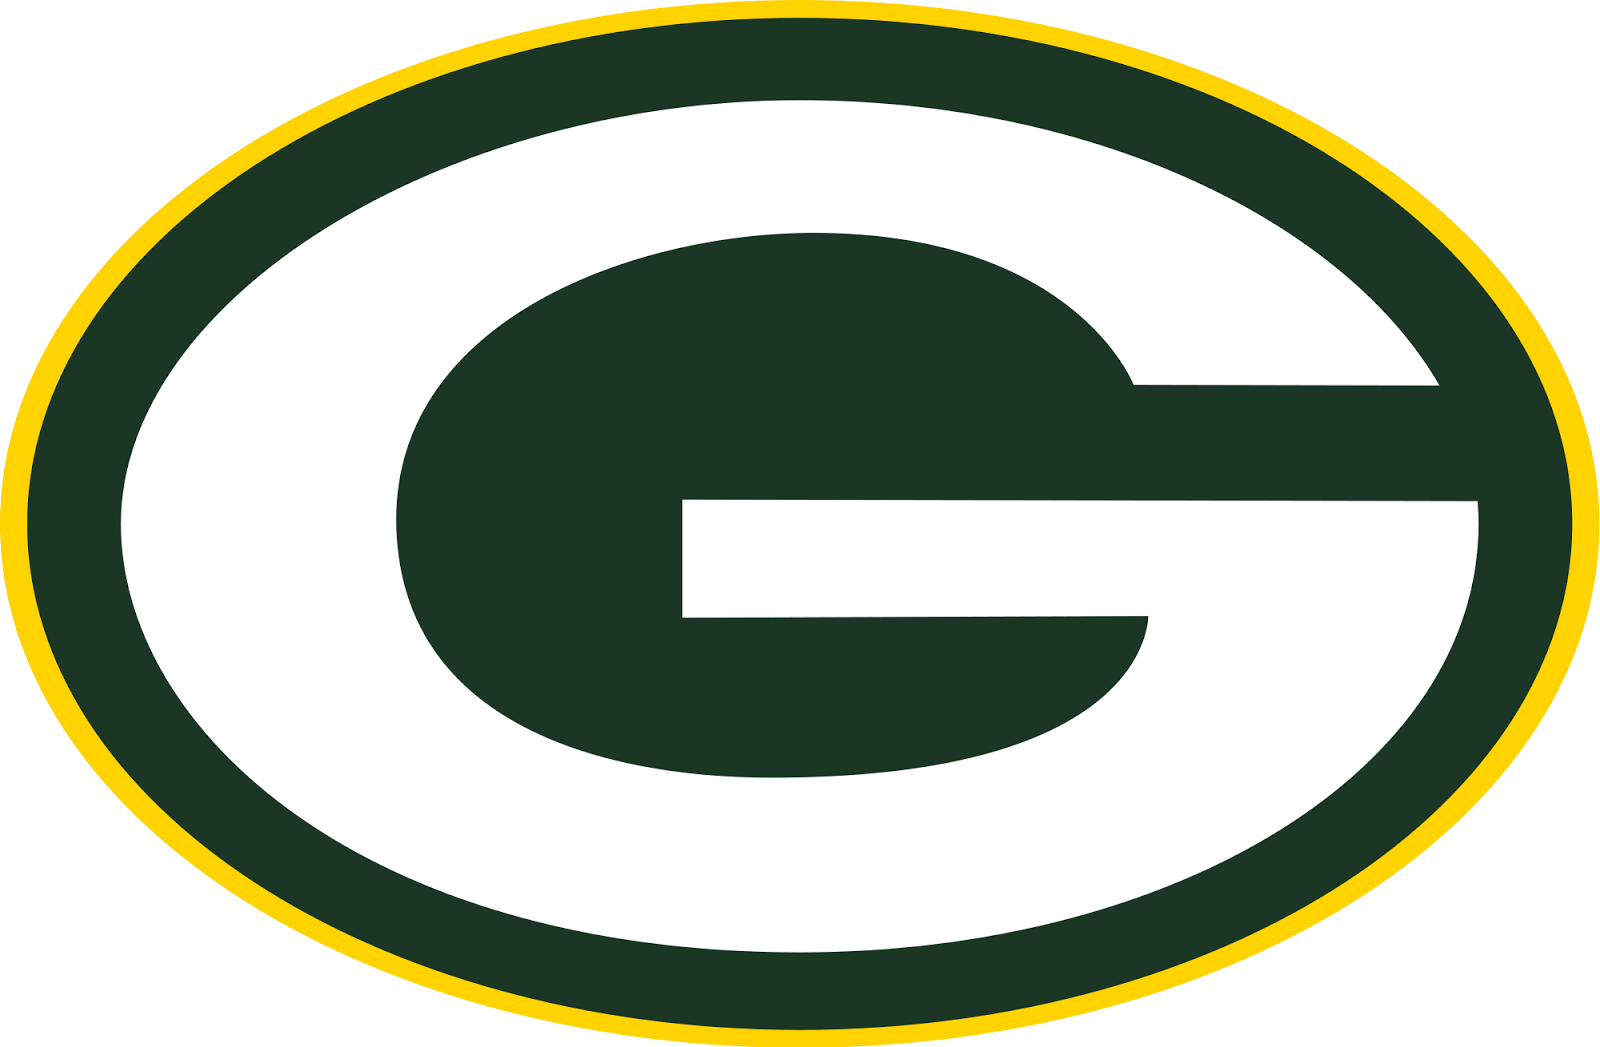 Agile image with regard to green bay packers printable logo